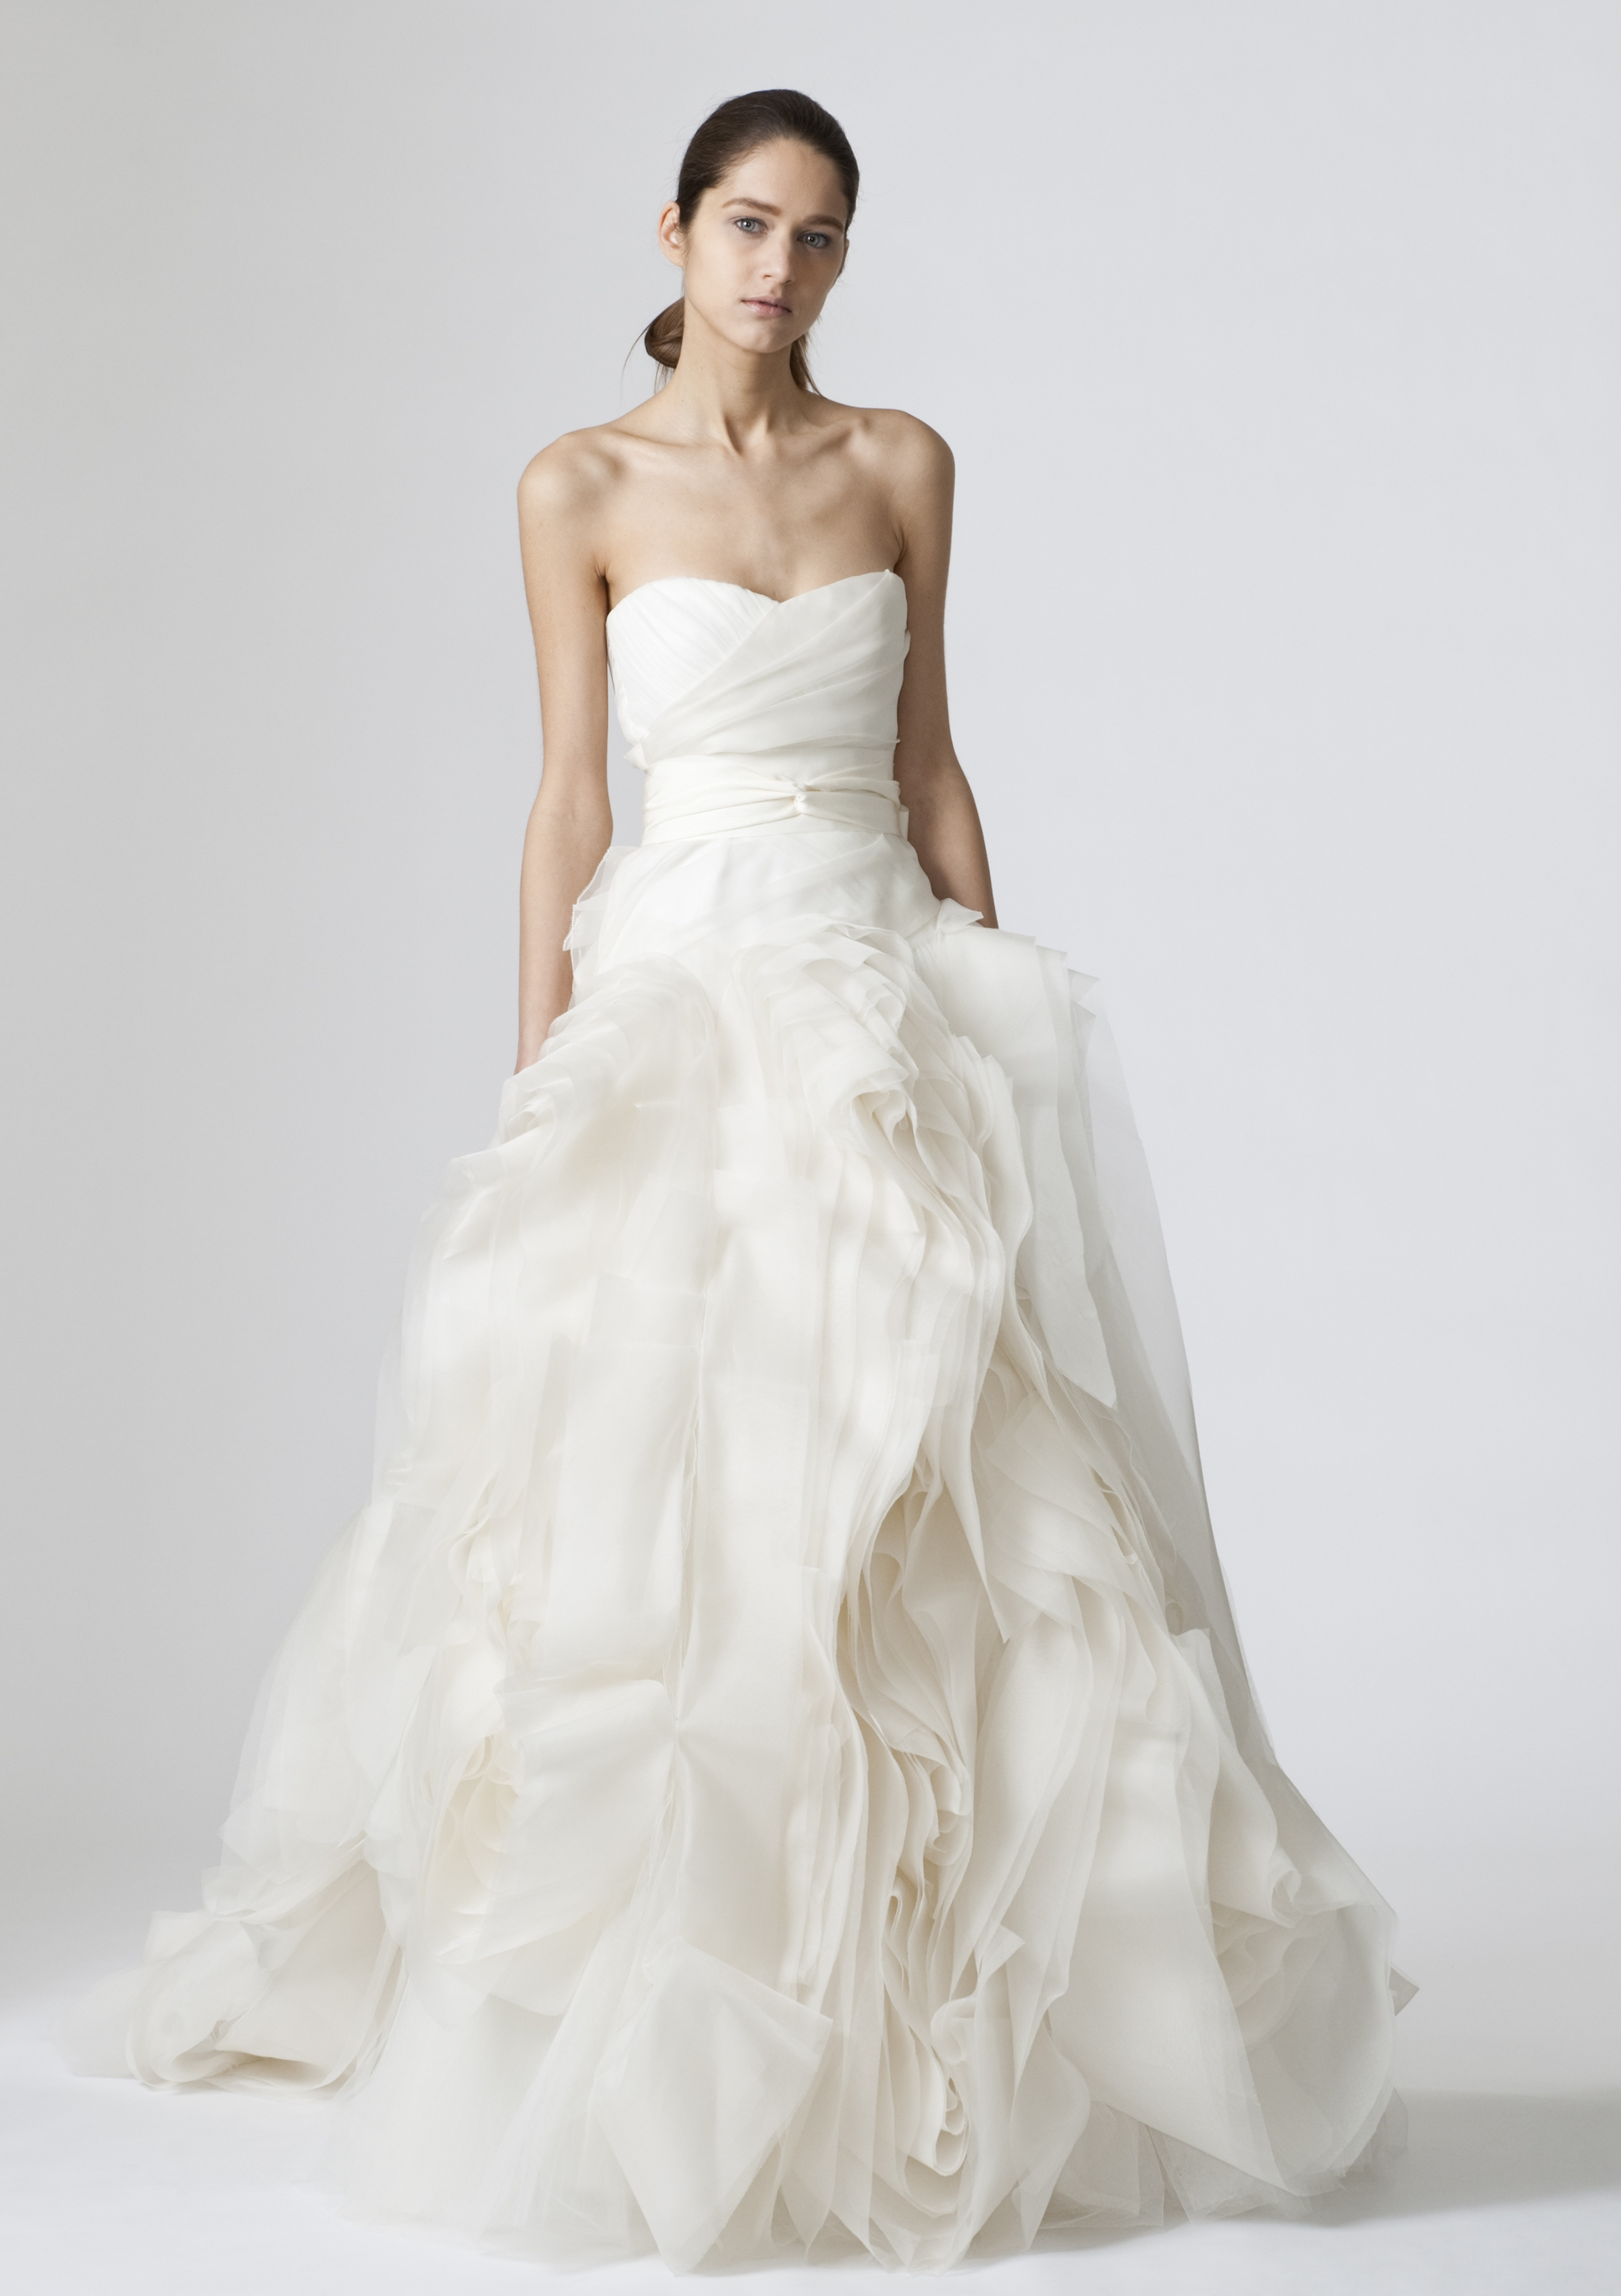 Vera wang wedding dresses handese fermanda vera wang wedding dress junglespirit Gallery